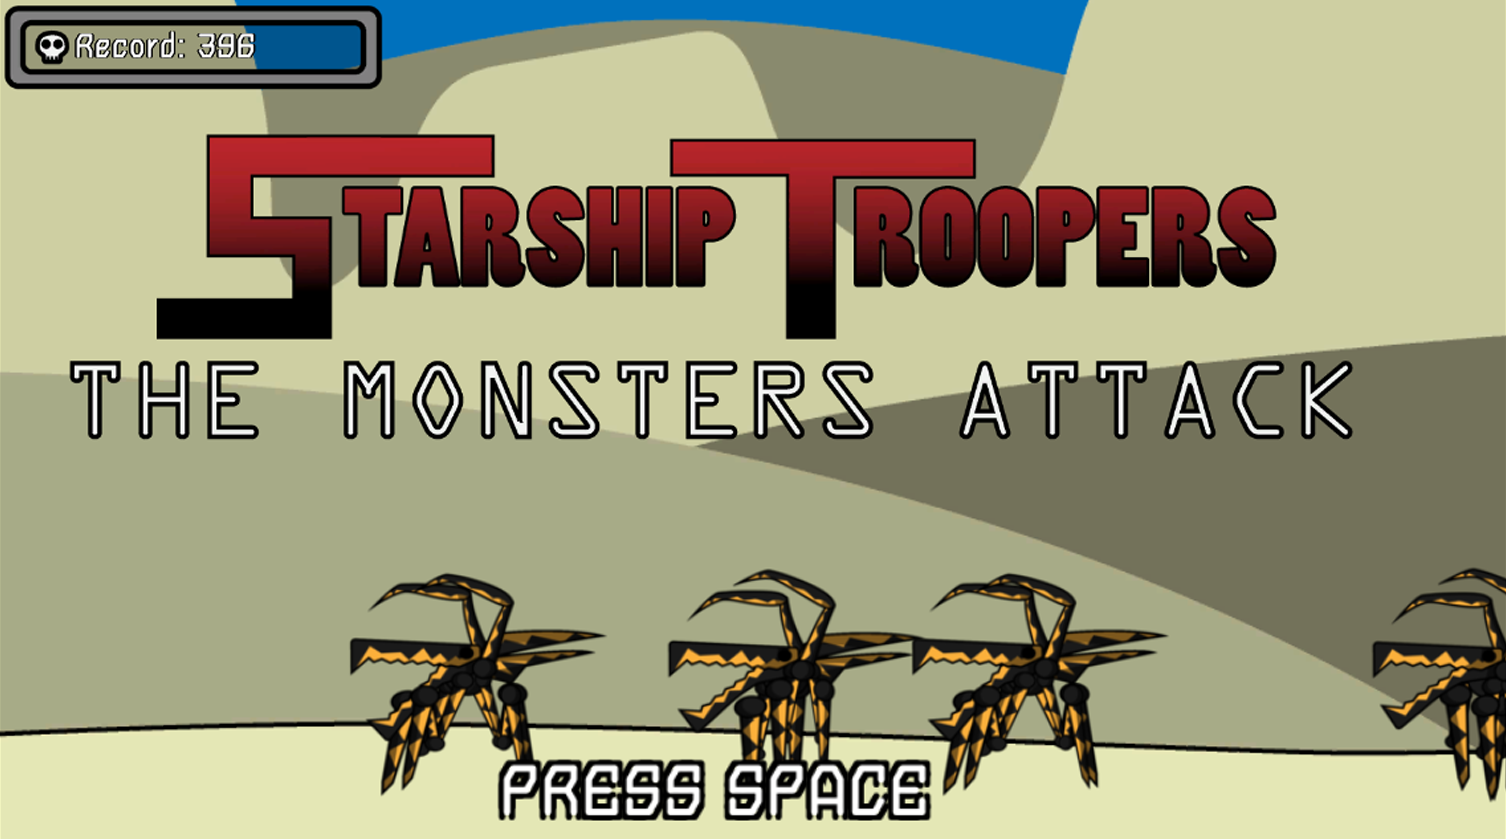 Starship troopers: The monsters attack